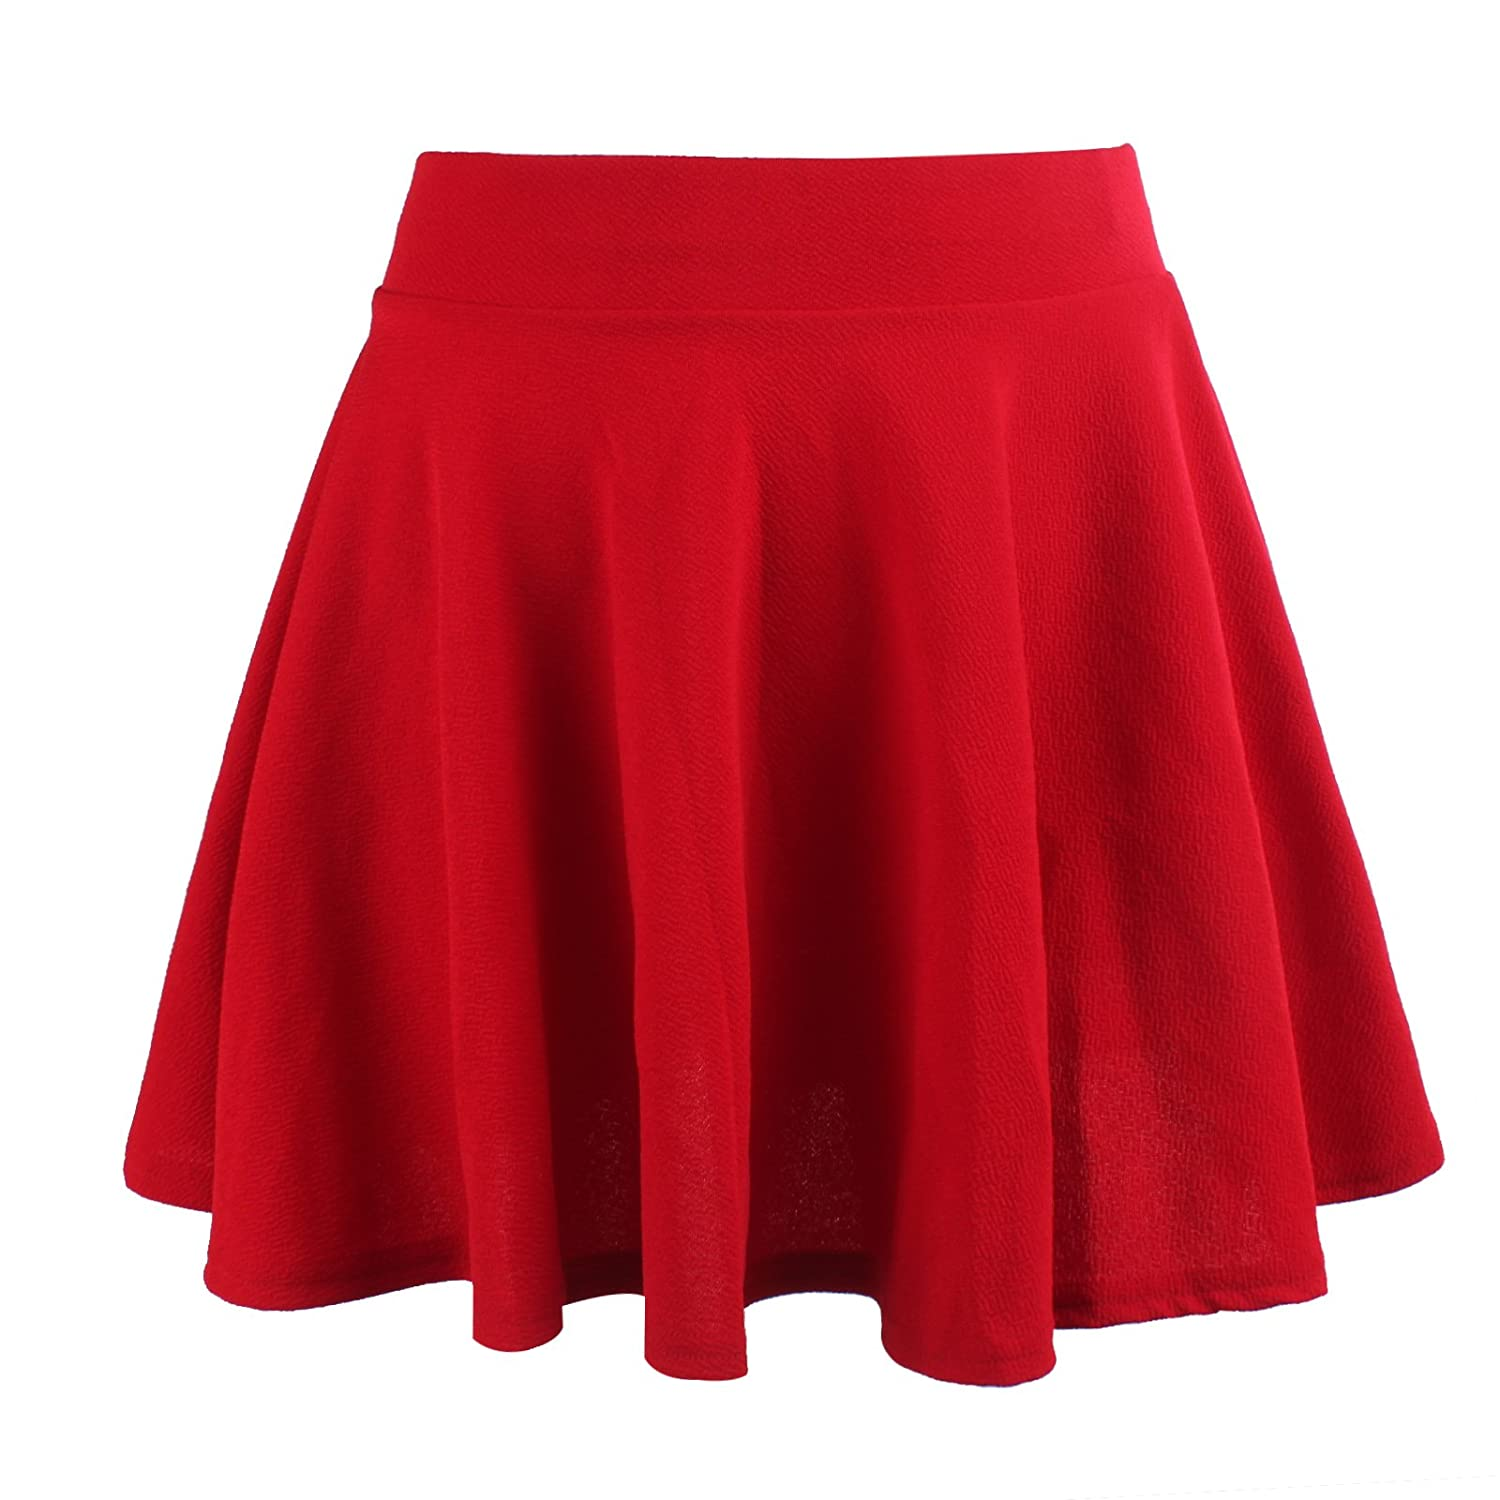 Moxeay Women's Stretch High Waist A Line Pleated Flared Mini Skater Skirt